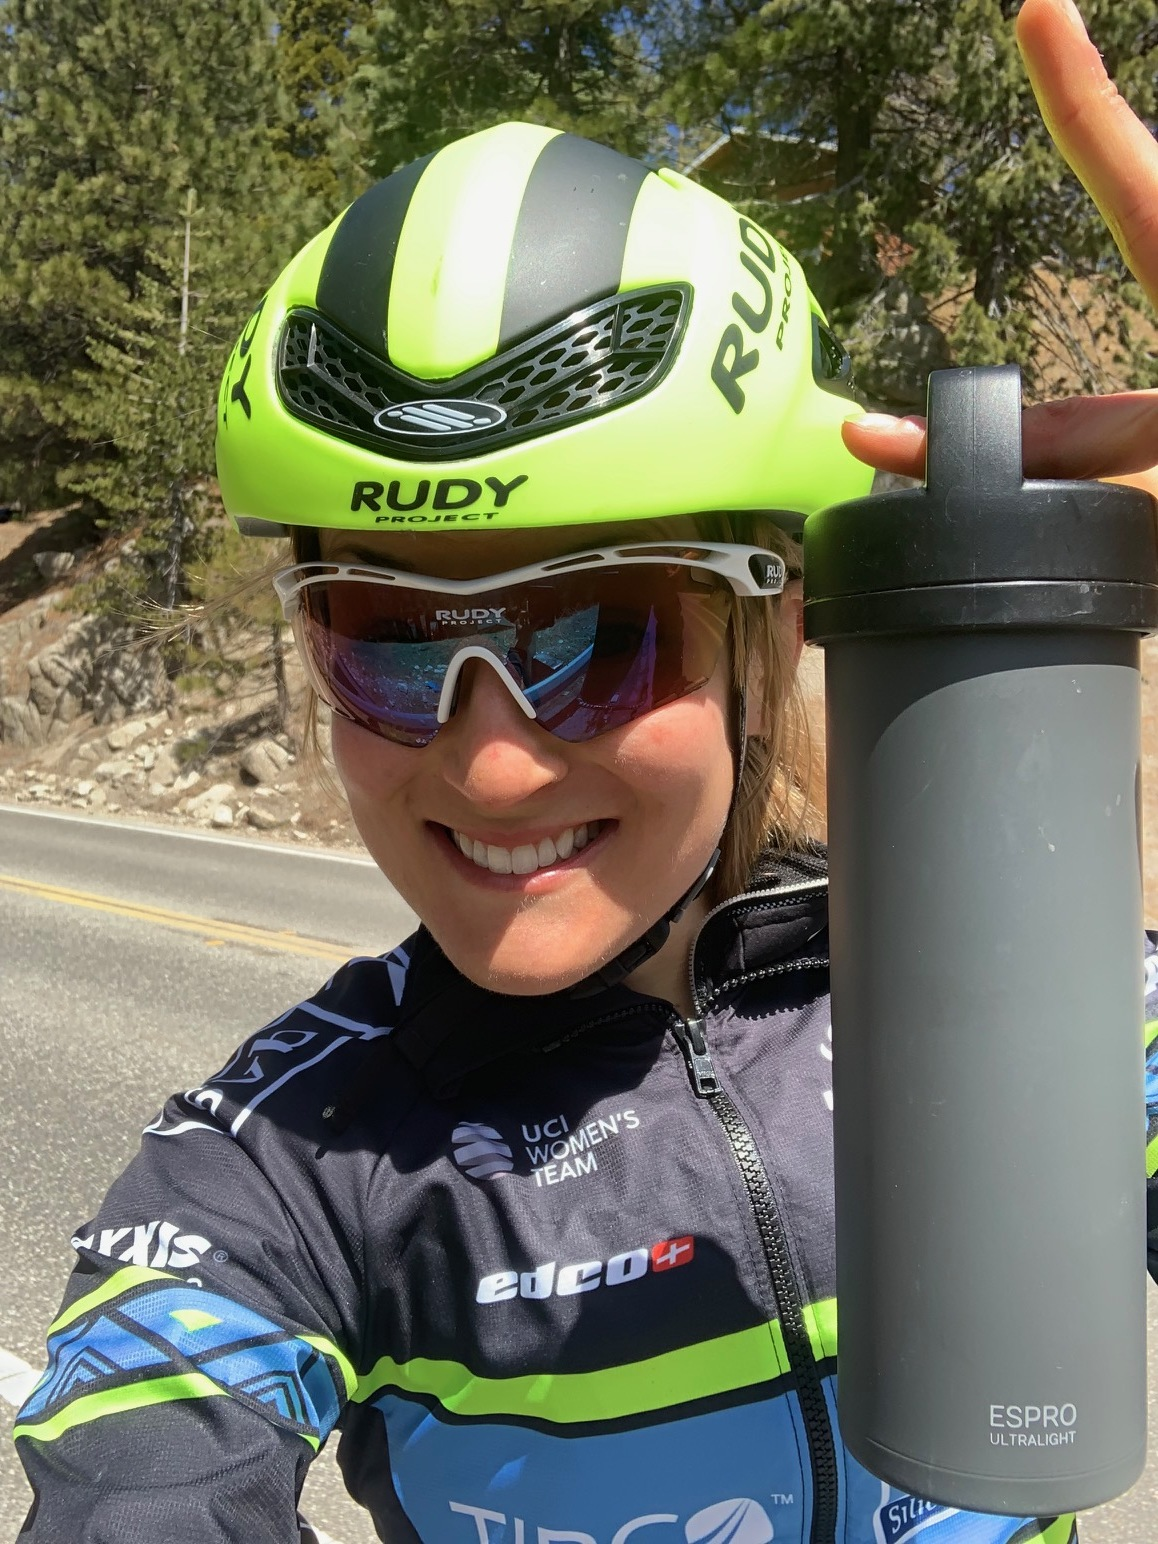 Professional cyclist Lex Albrecht with ESPRO ultralight frenchpress on a bike ride wearing Rudy Project boost helmet